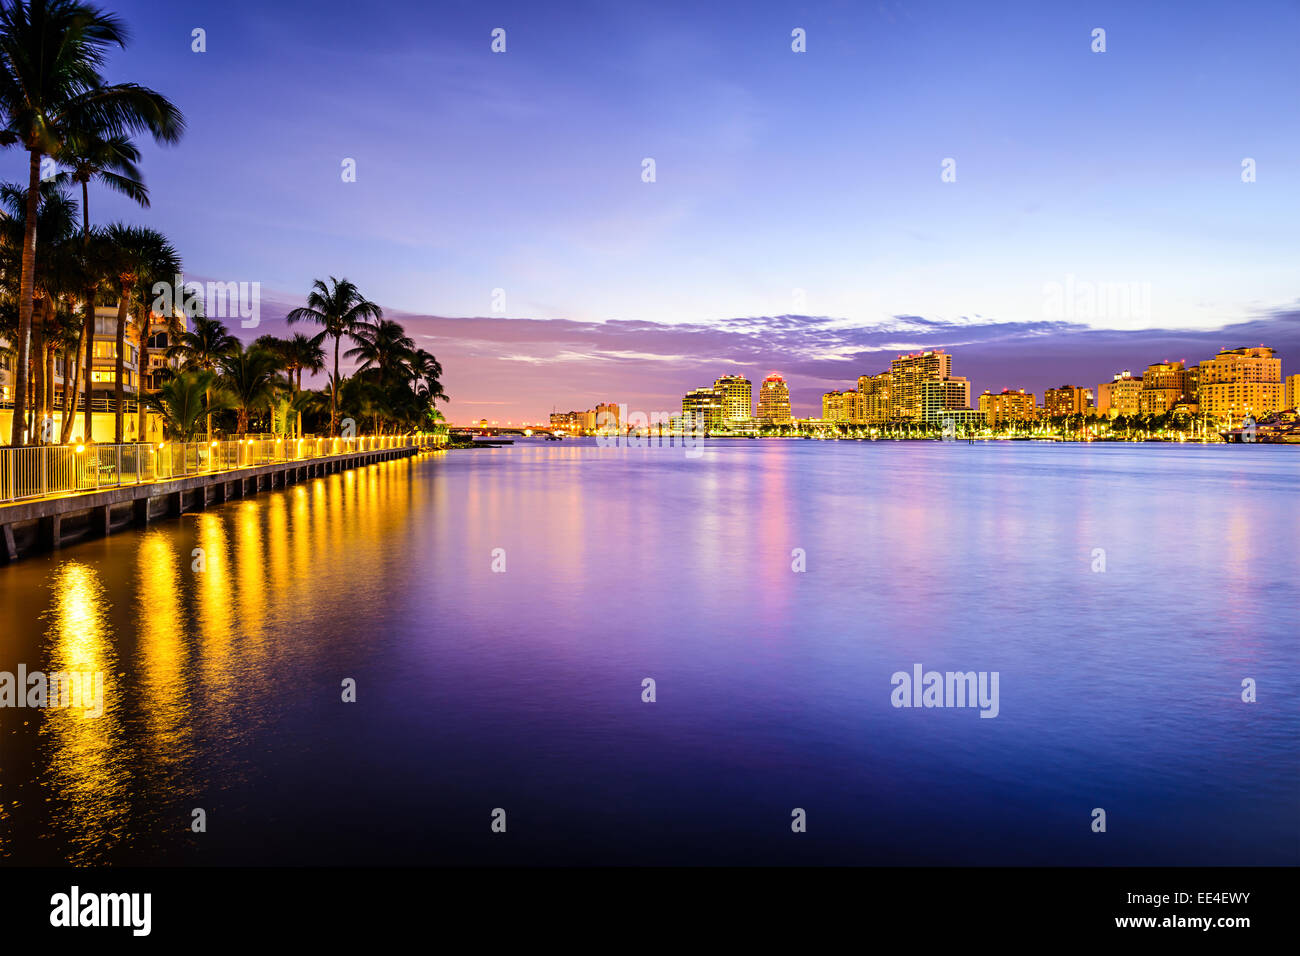 West Palm Beach, Florida cityscape sulla Intracoastal Waterway. Immagini Stock